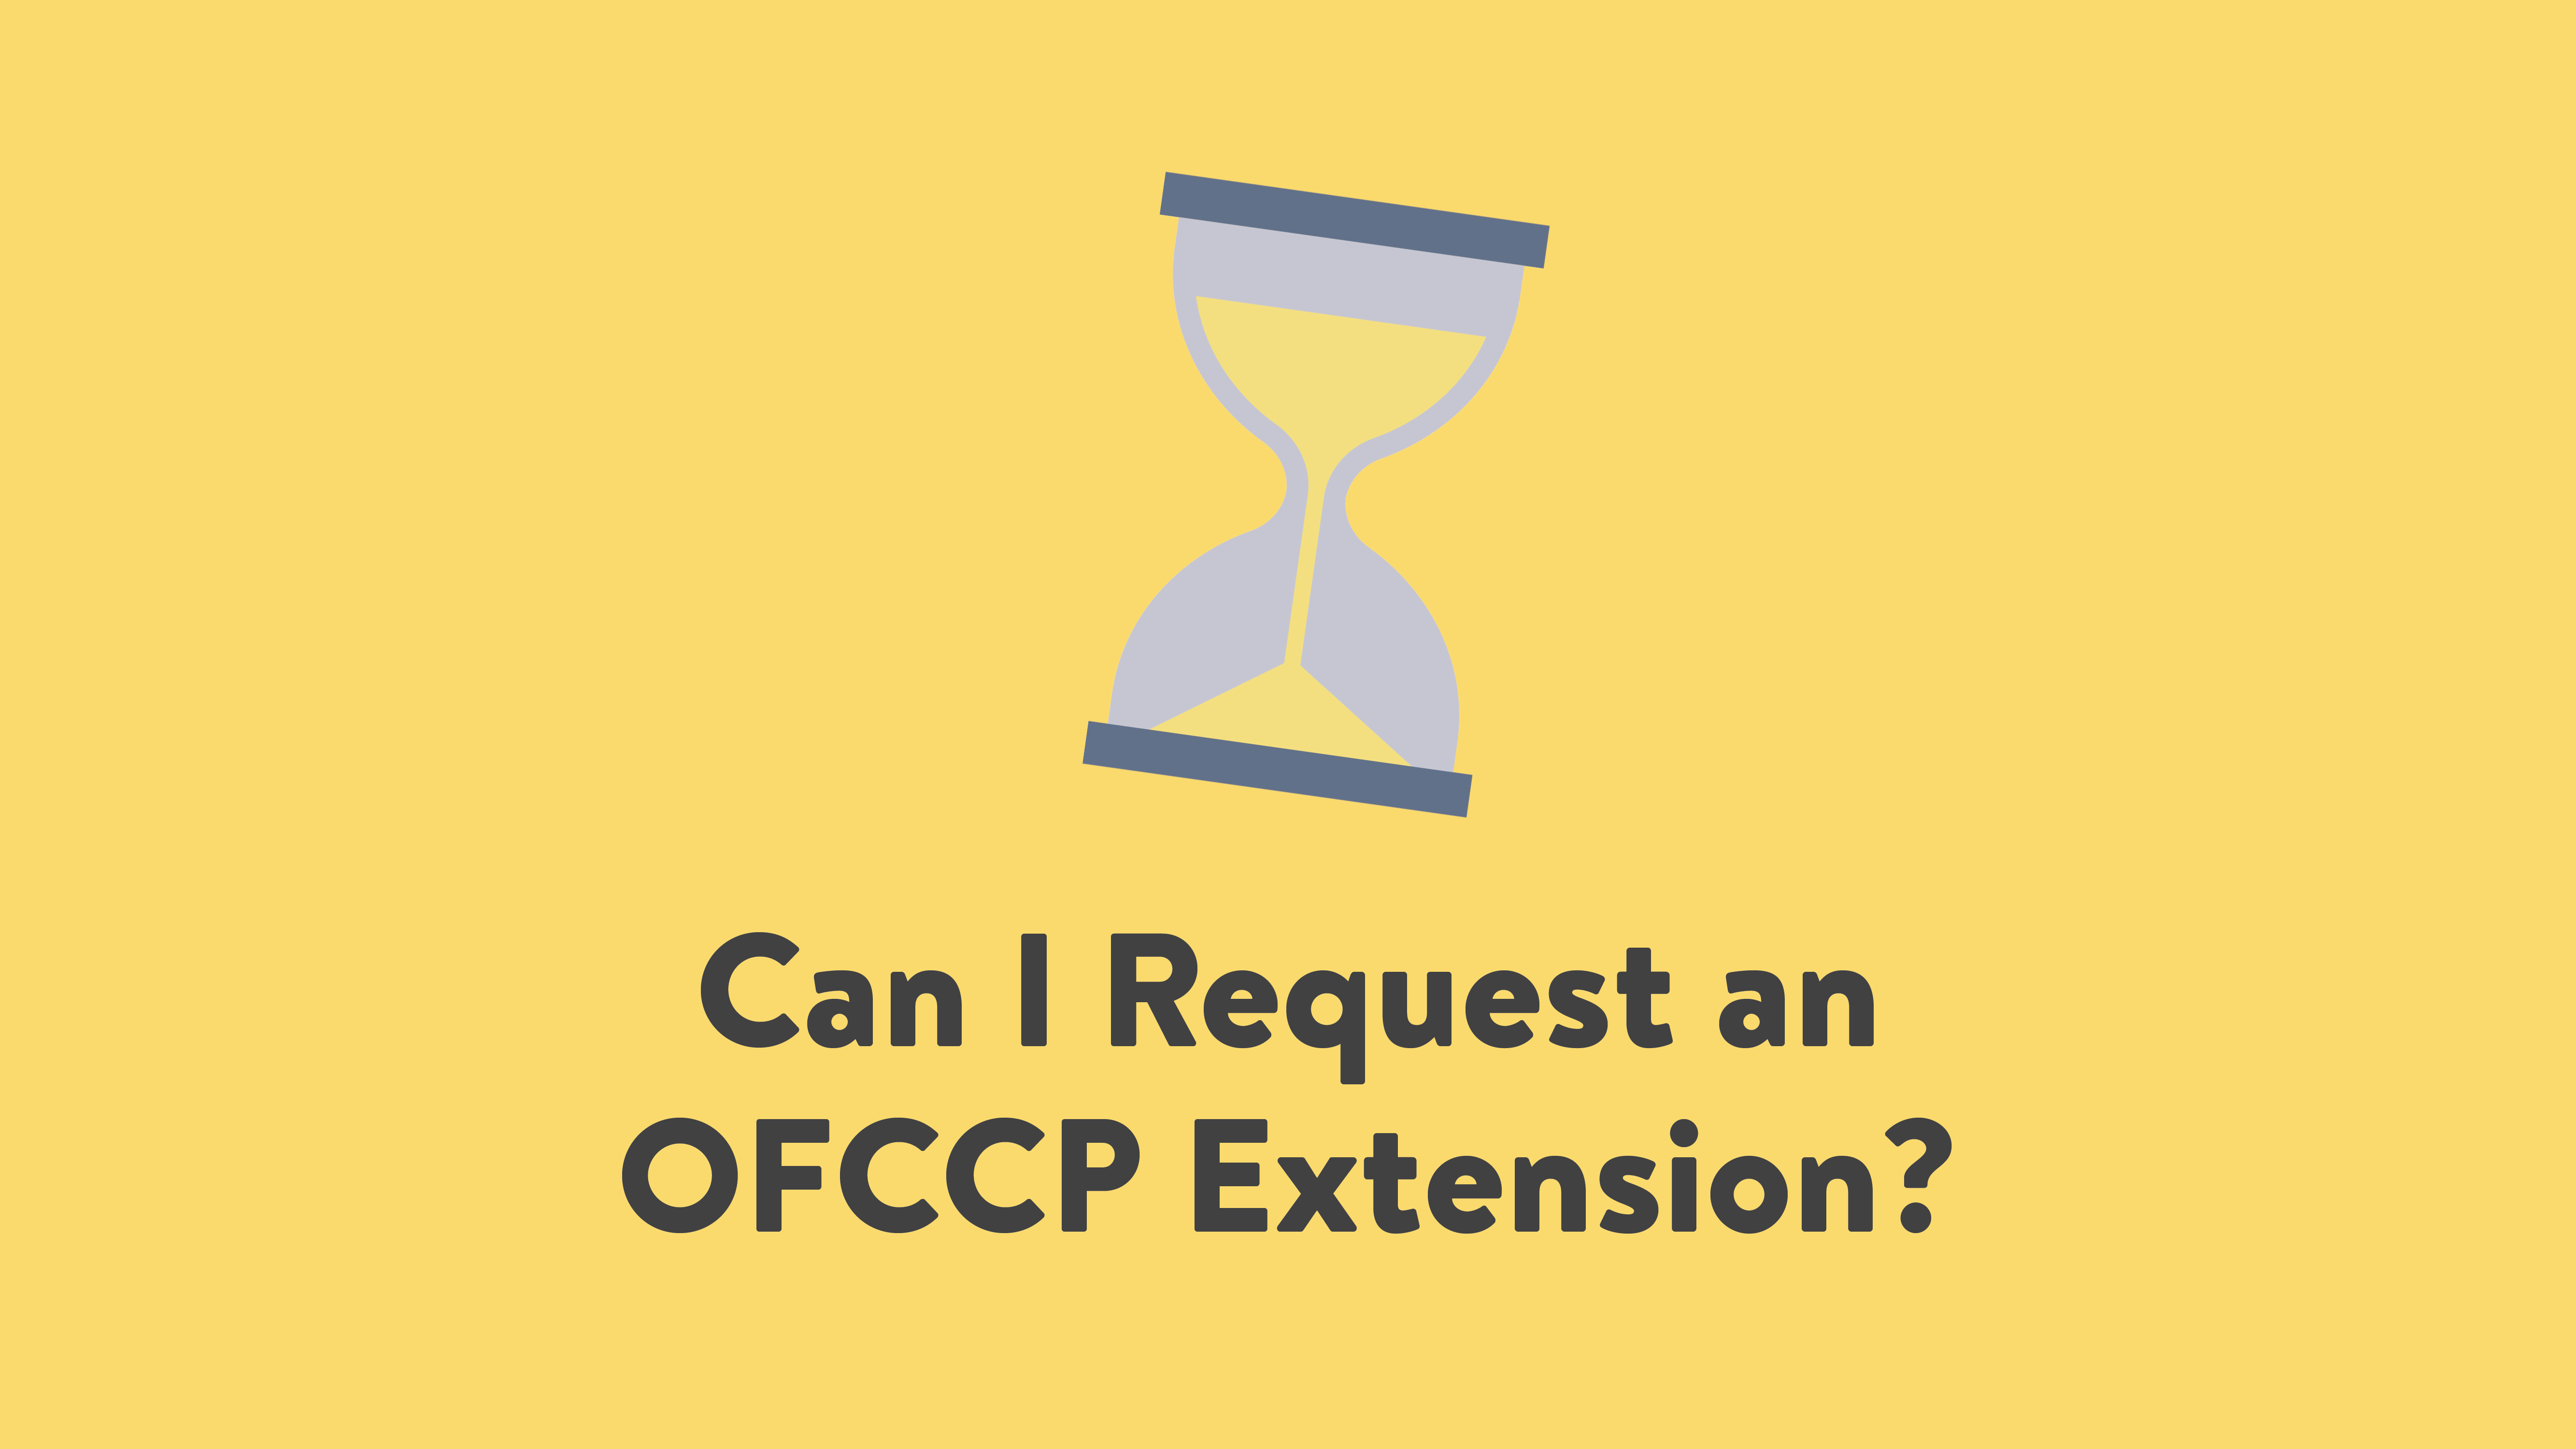 Can I Request an OFCCP Extension?